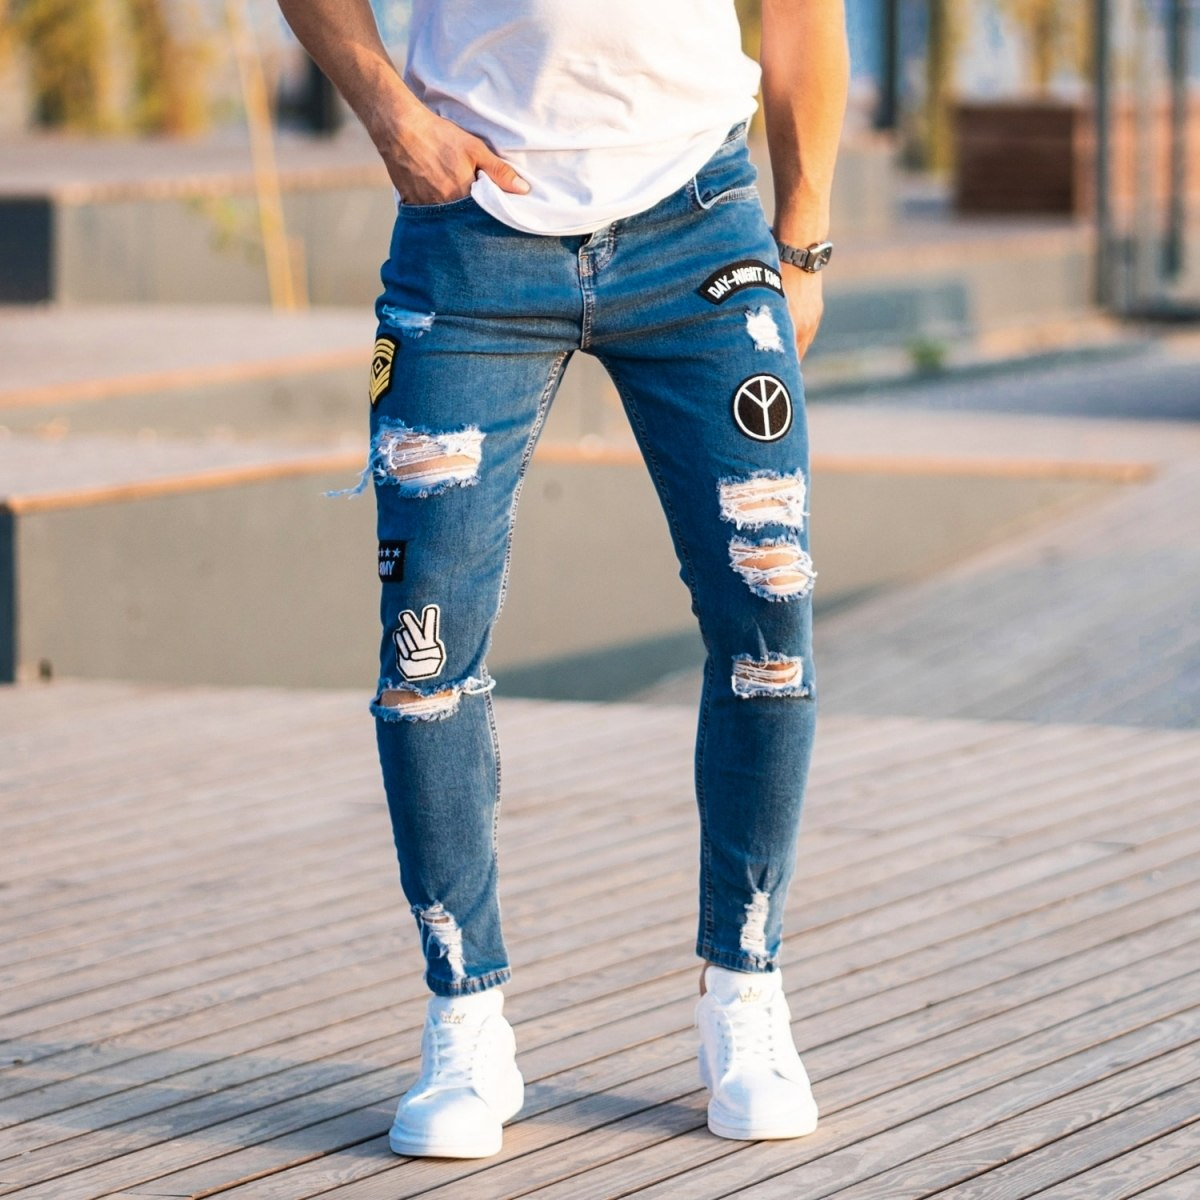 Men's Patchworked Jeans In Blue